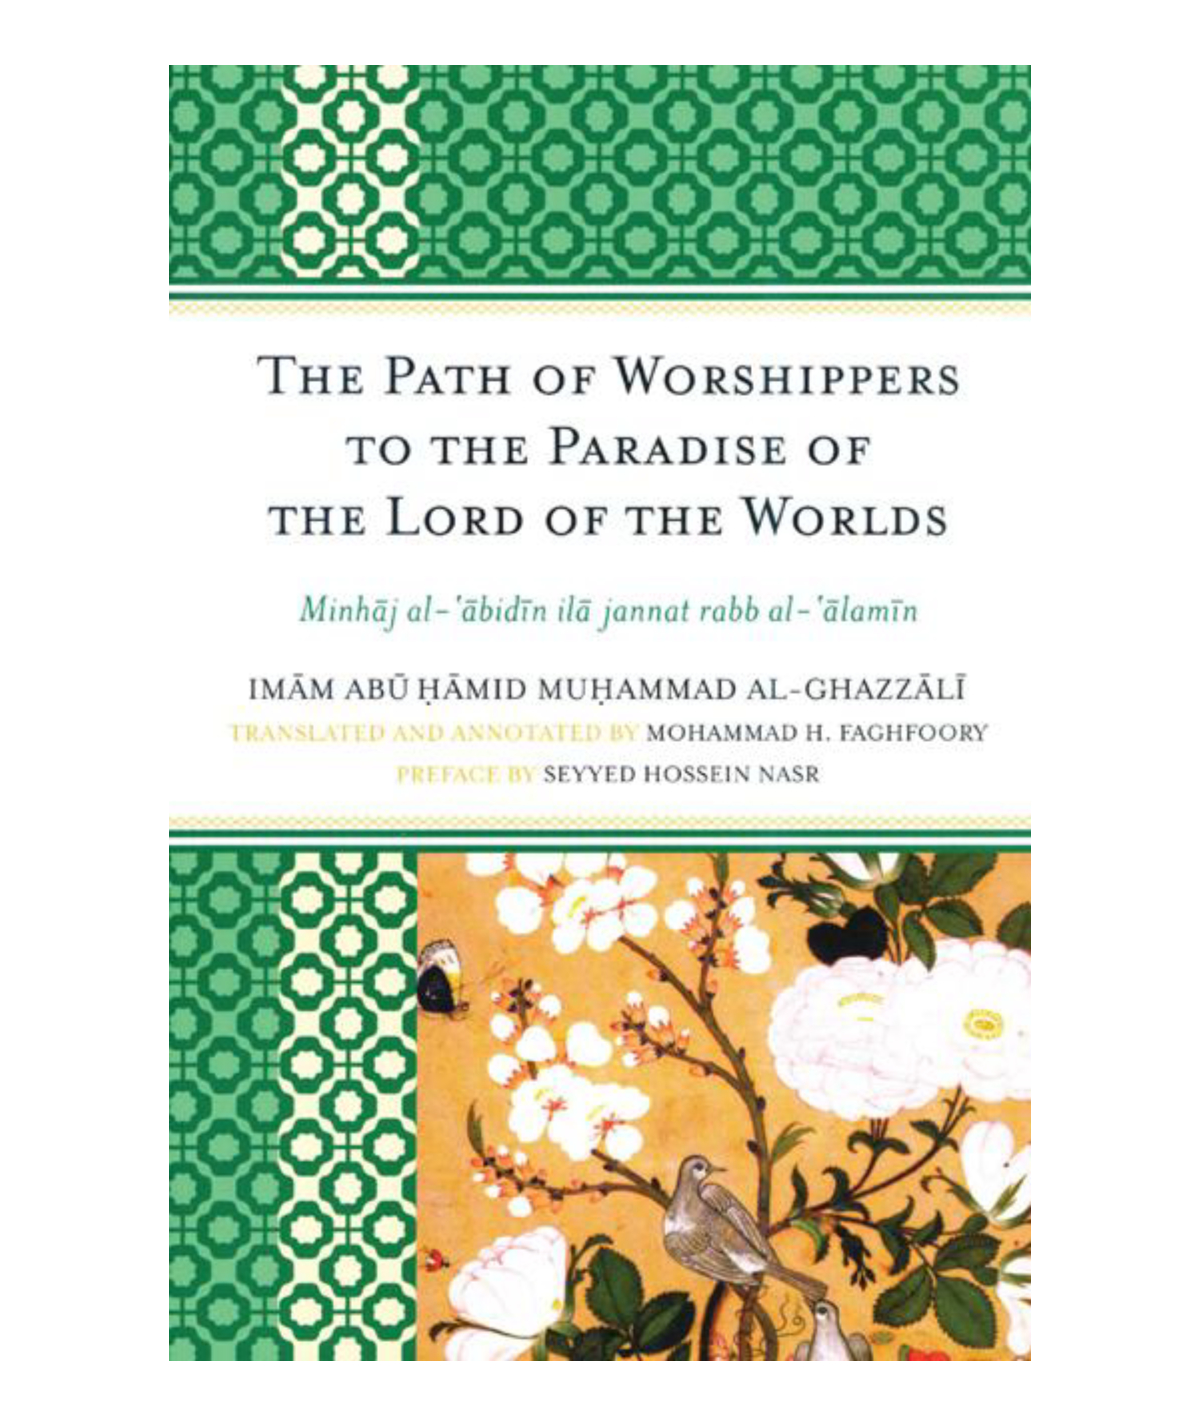 The Path of Worshippers to the Paradise of the Lord of the Worlds